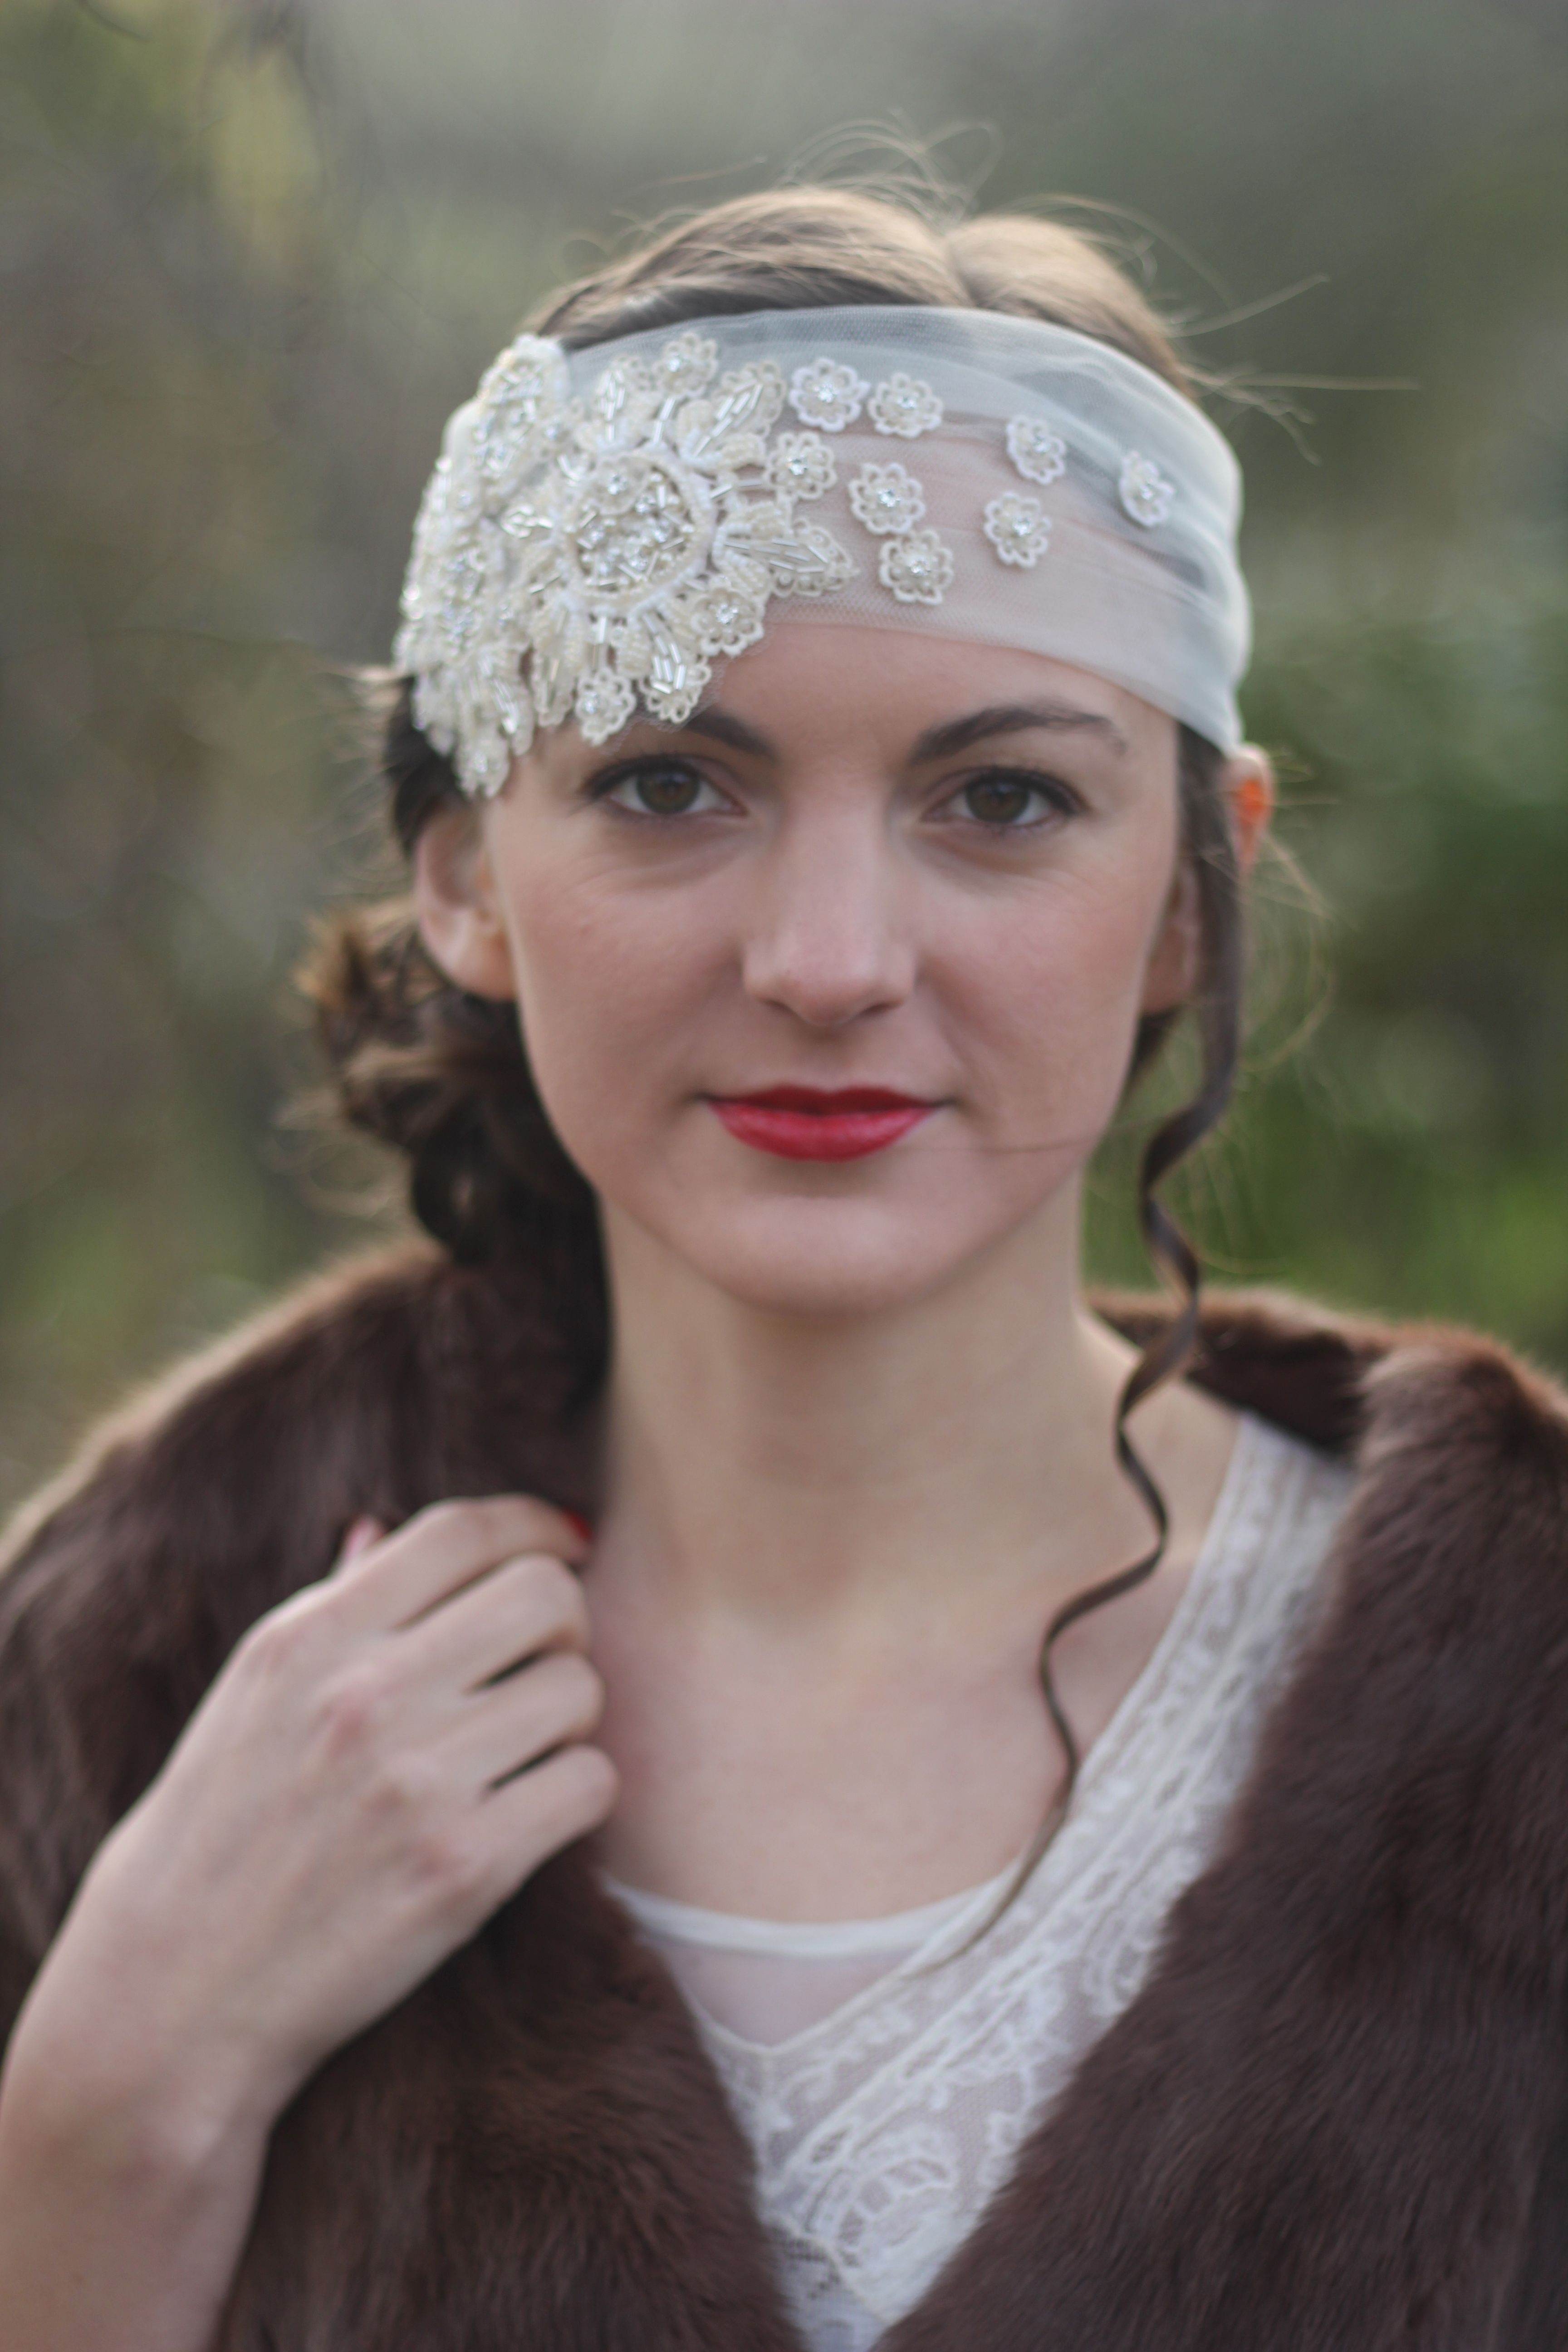 Thelma hand embellished tulle headband with swarovski crystals by